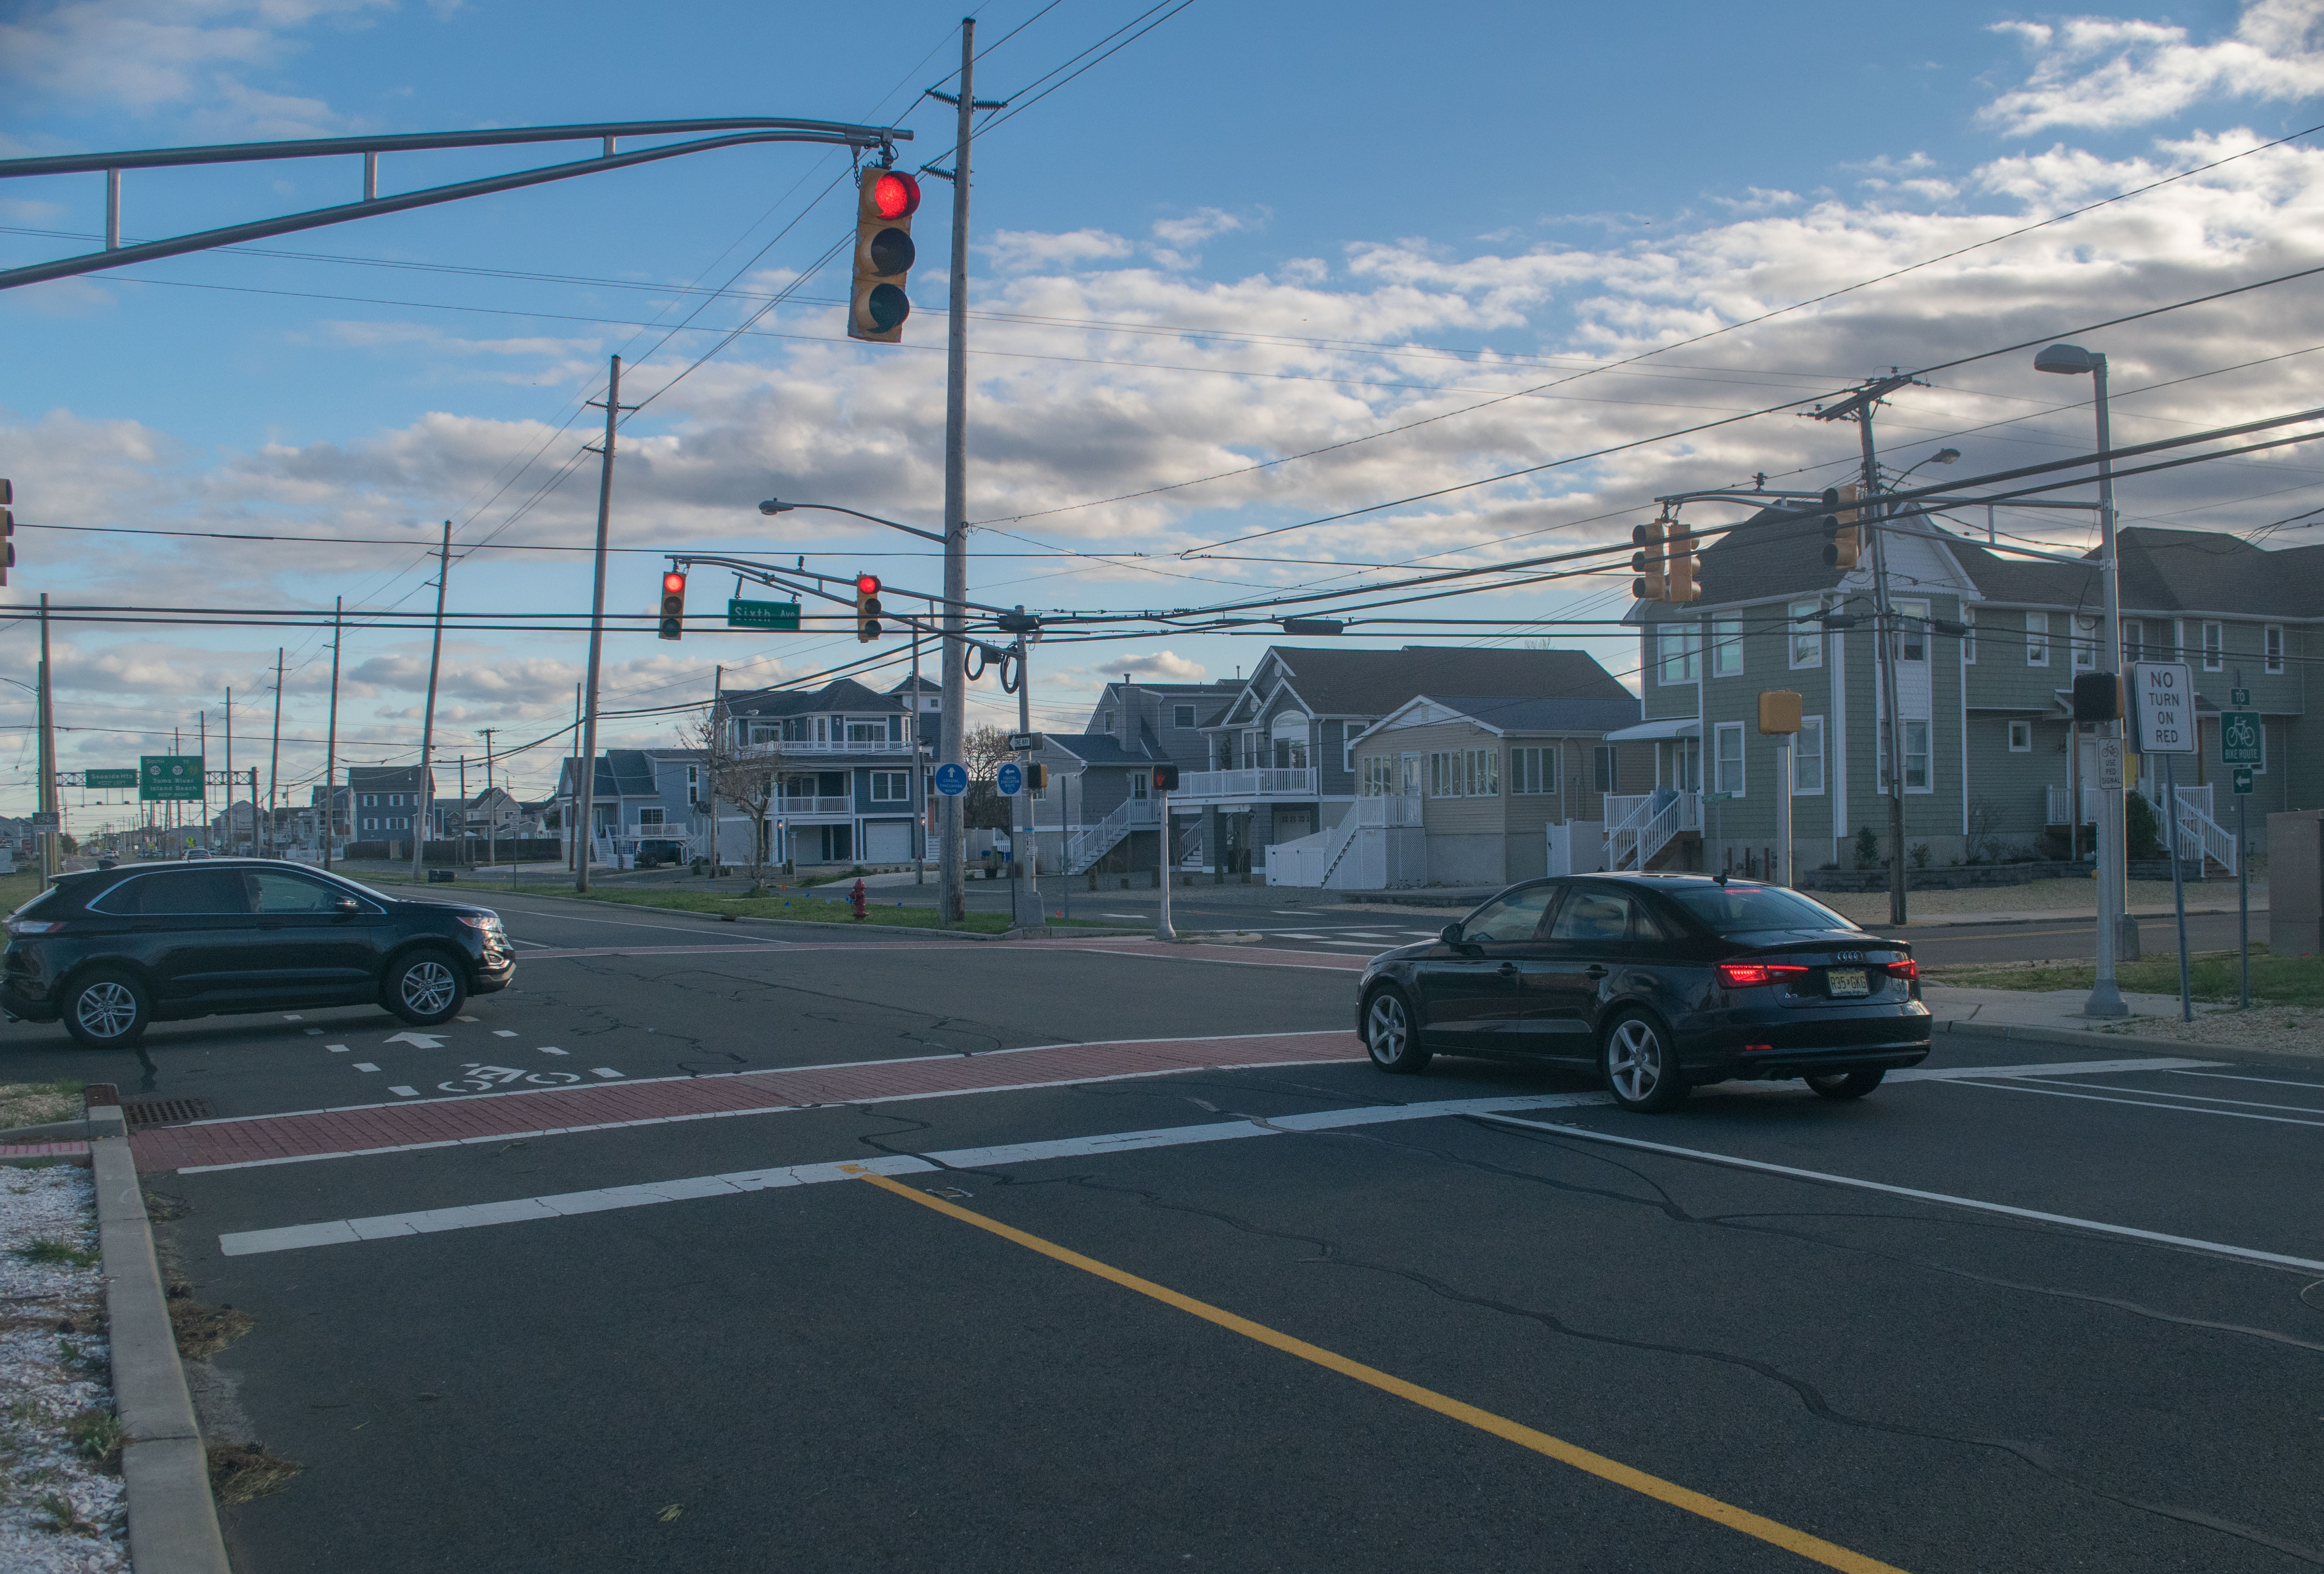 A traffic light at an intersection in Ortley Beach, April 15, 2019. (Photo: Daniel Nee)